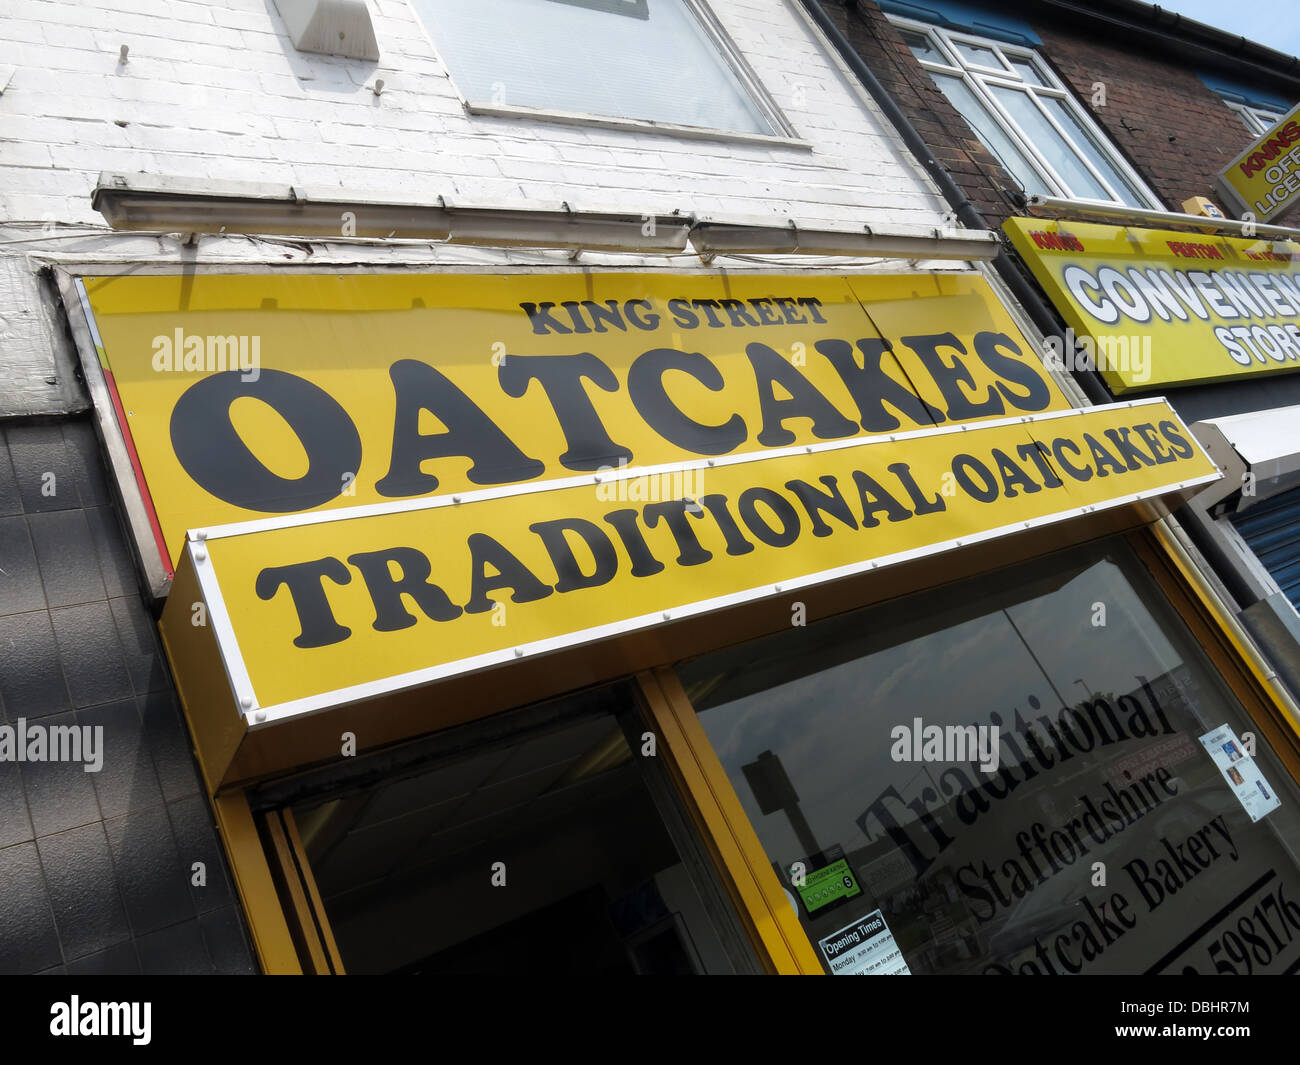 Exterior of a traditional Stoke / Staffordshire Oatcake shop, with bright yellow frontage. Stock Photo